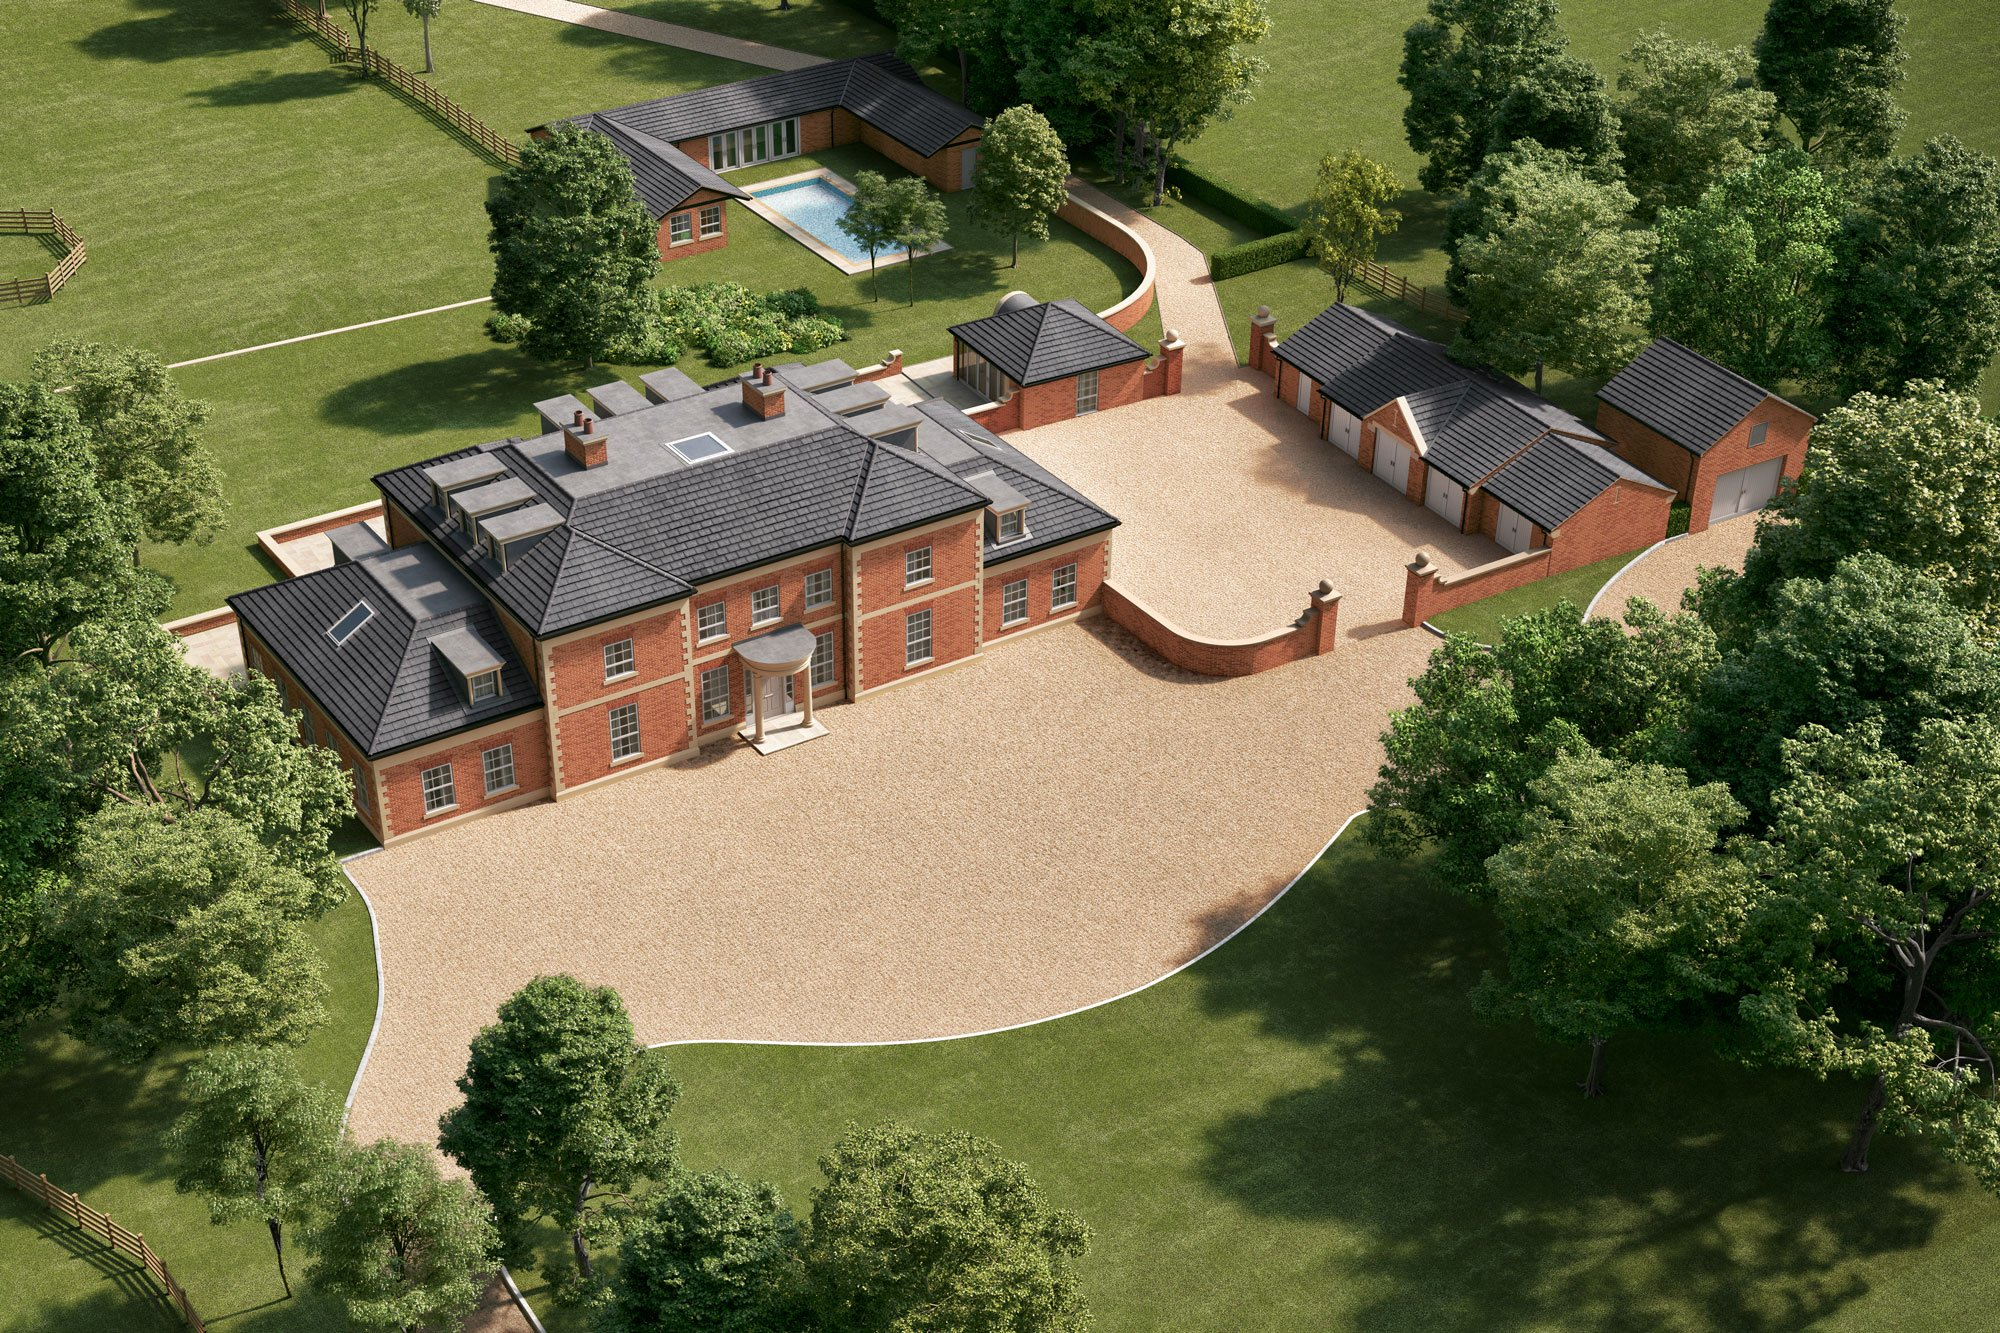 A birdseye view of the expansive Chaseley Farm manor building and surrounding landscape, with pool, stables and large gravel driveway.